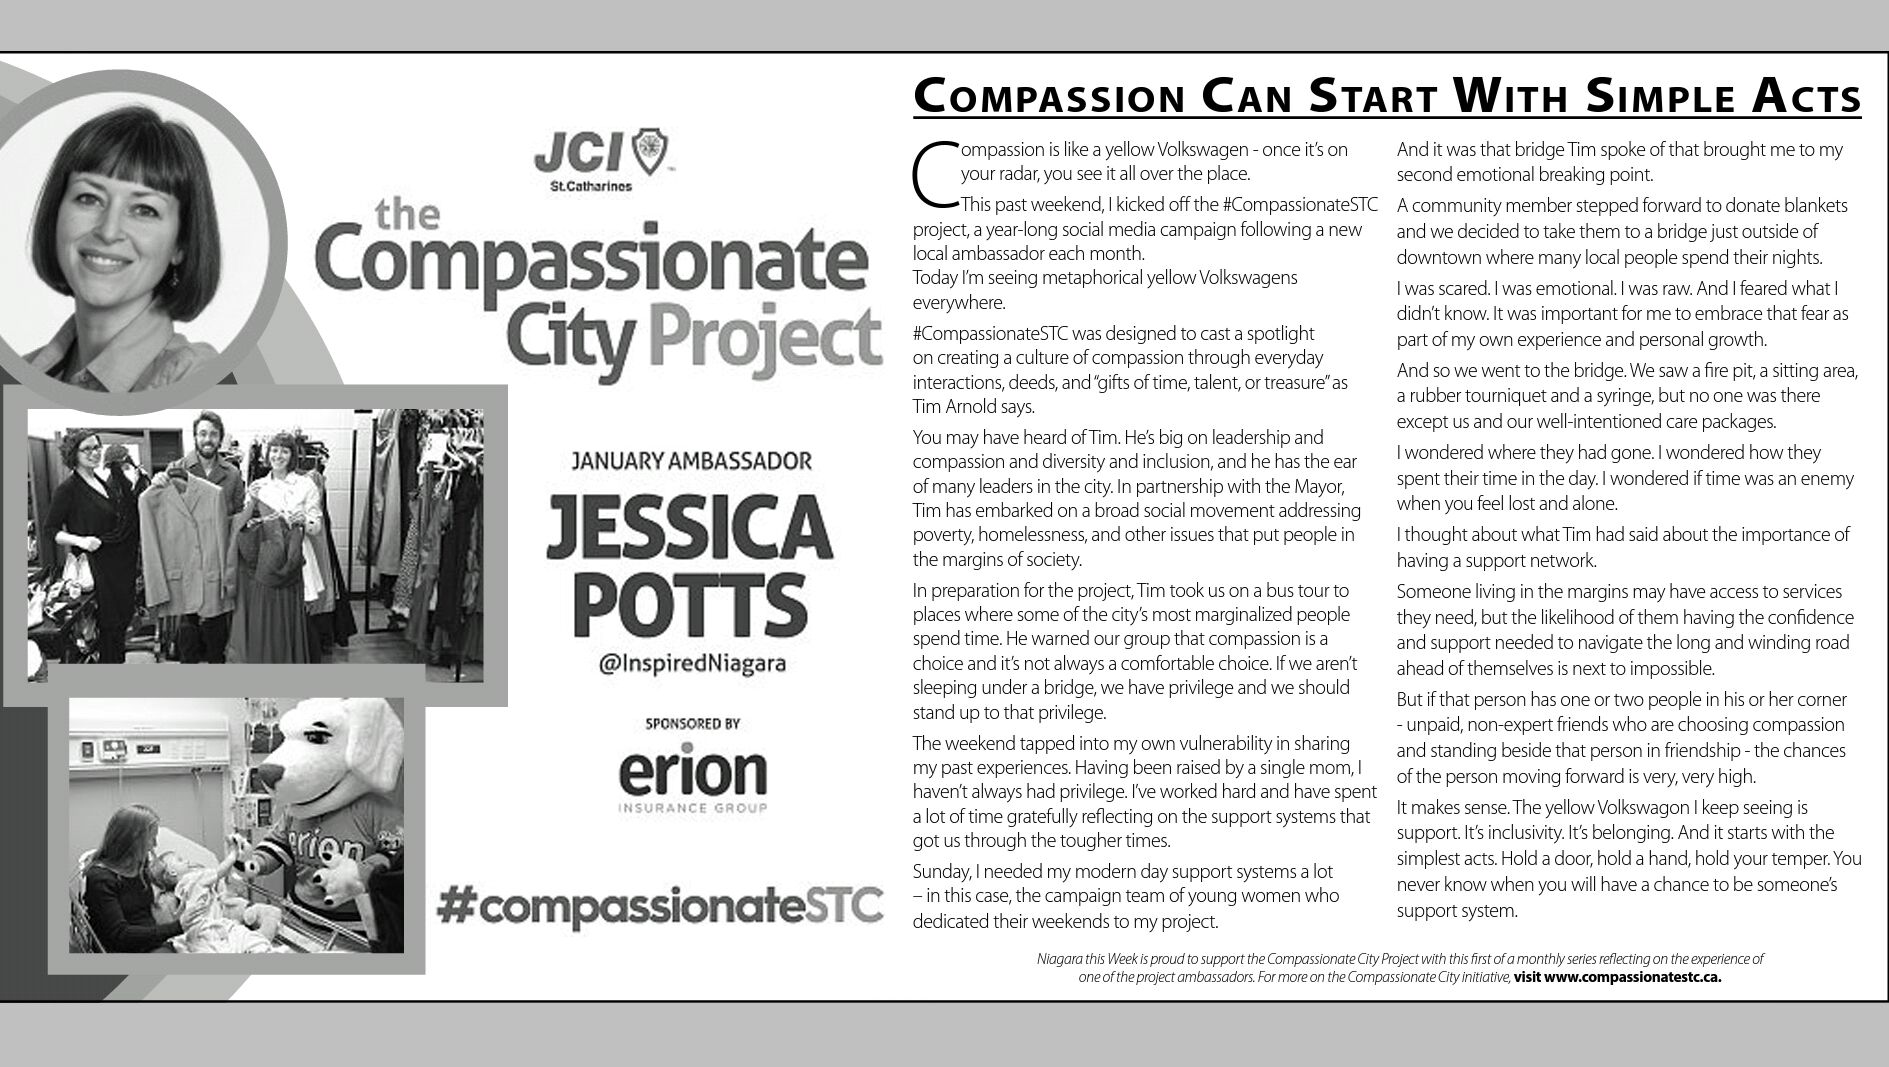 The Compassionate City Project: Compassion can start with simple acts – Jessica Potts